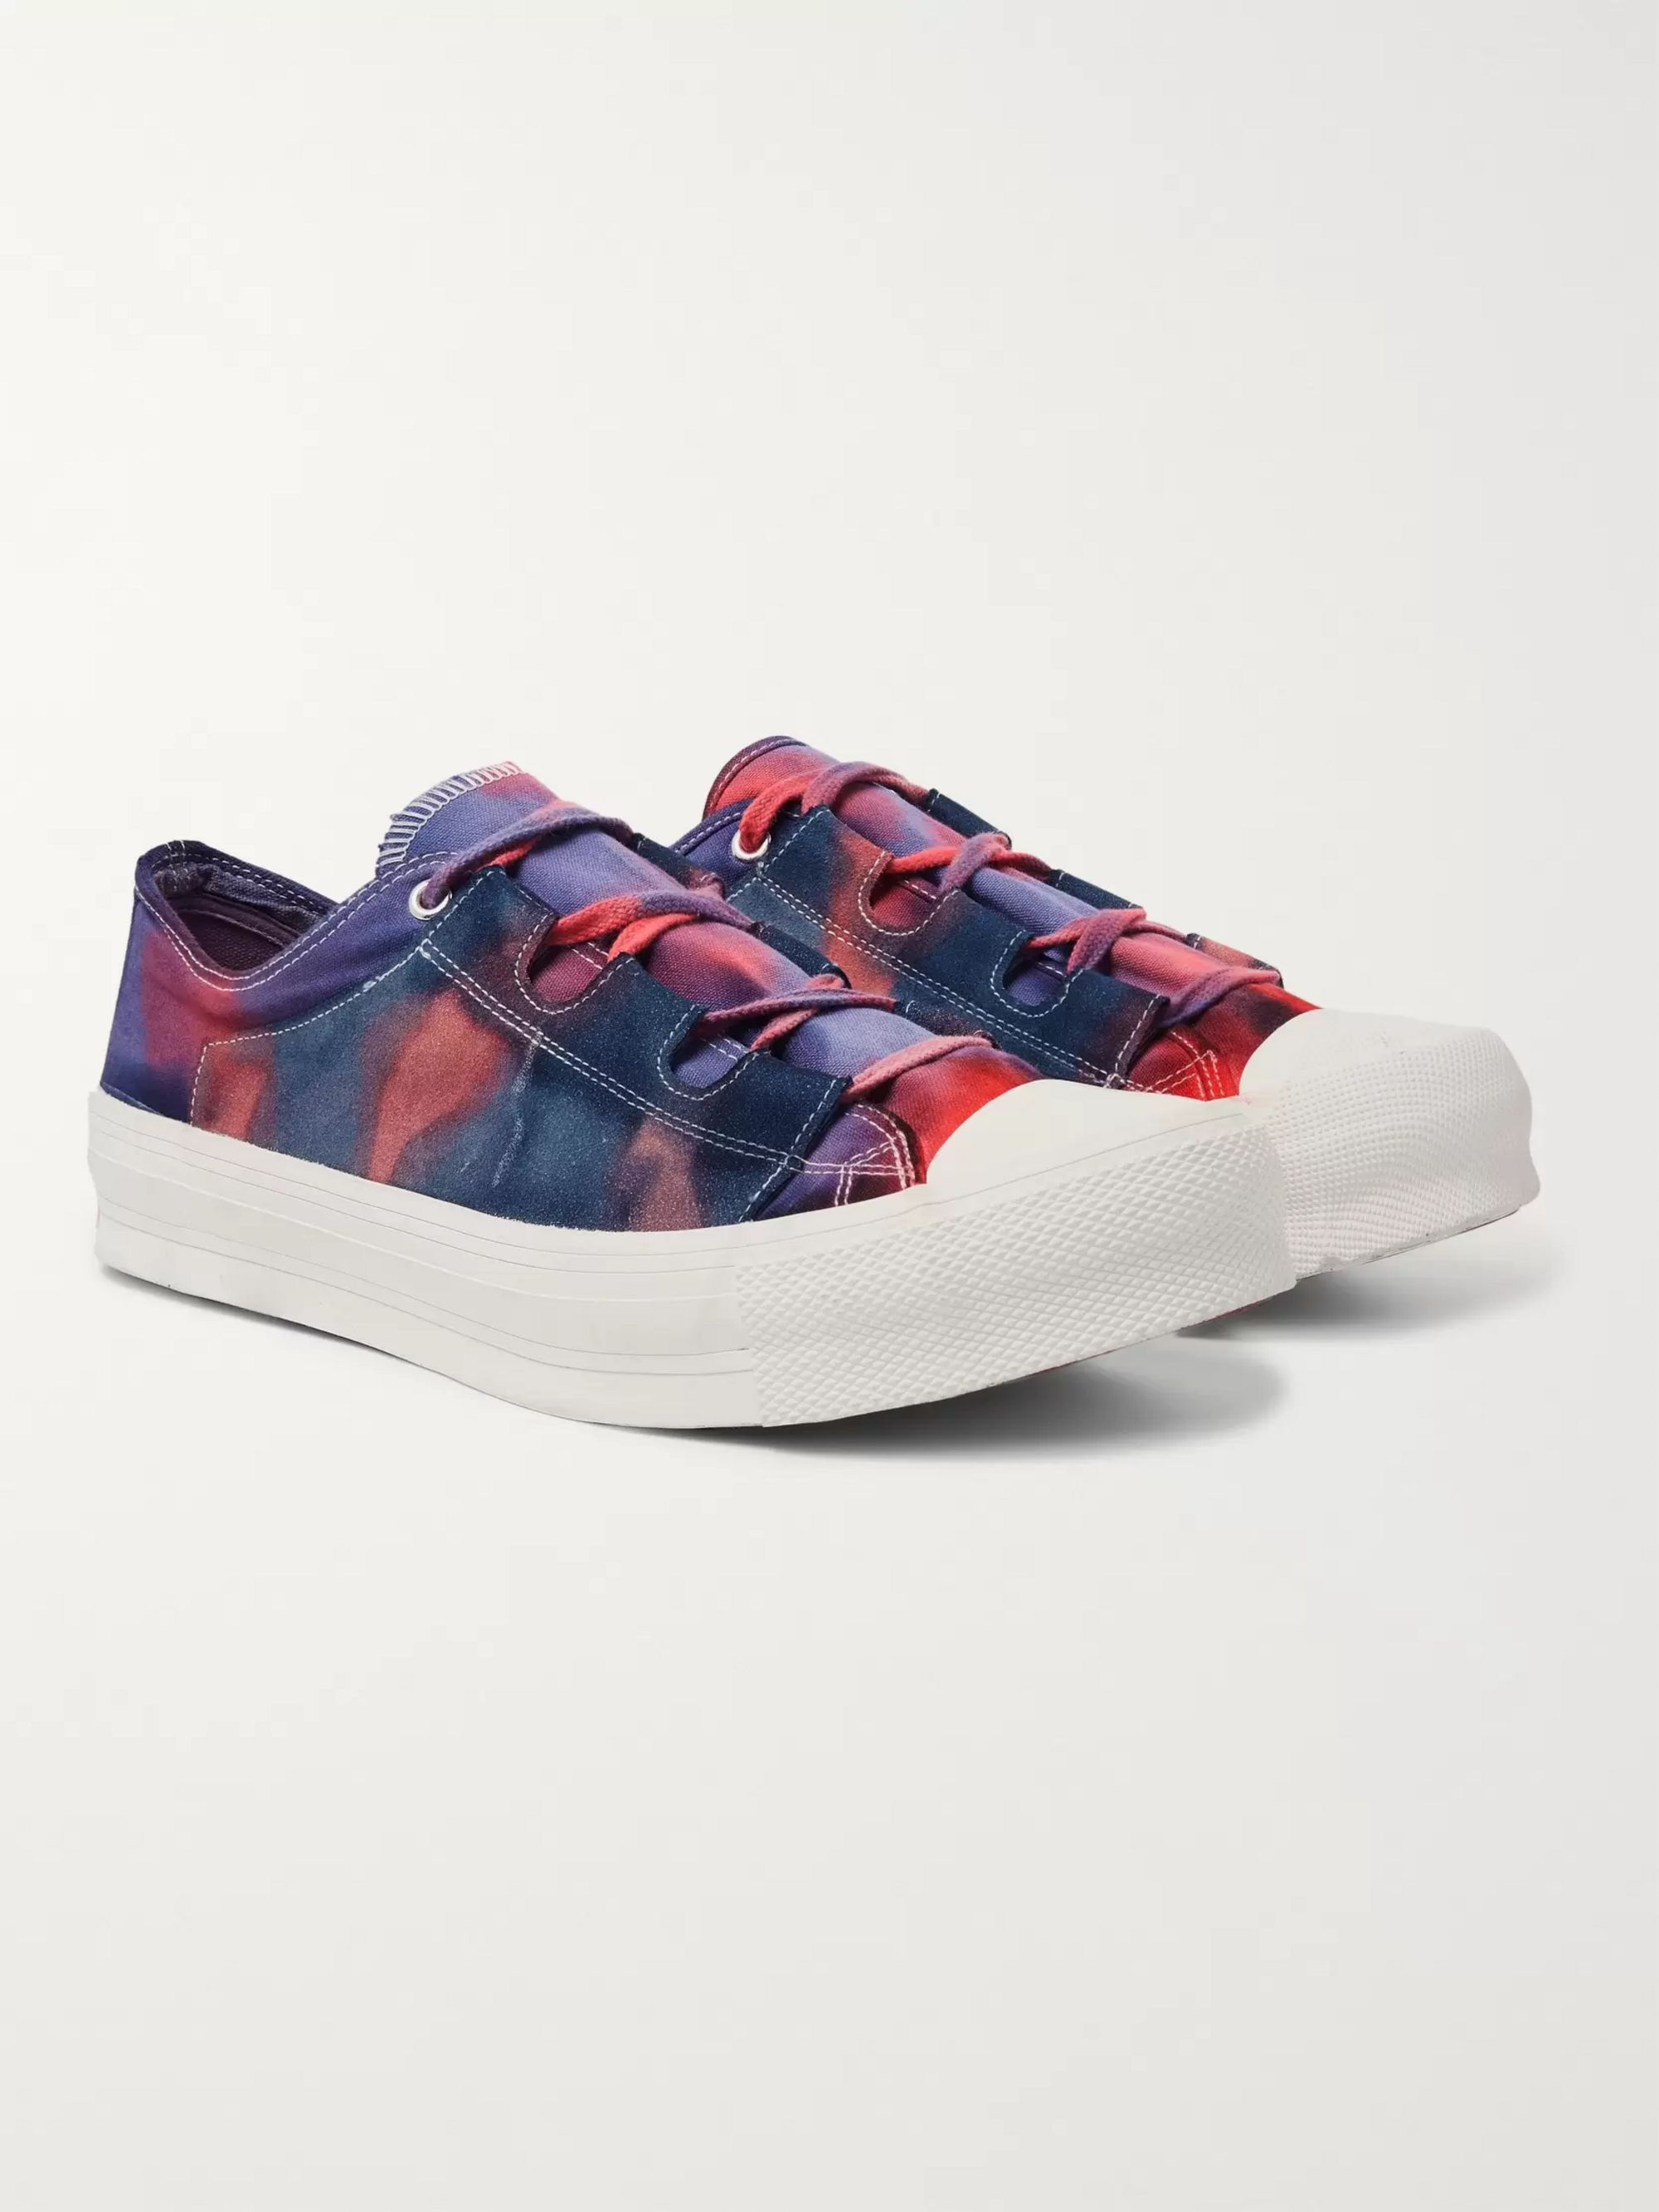 Needles Ghillie Tie-Dyed Canvas Sneakers